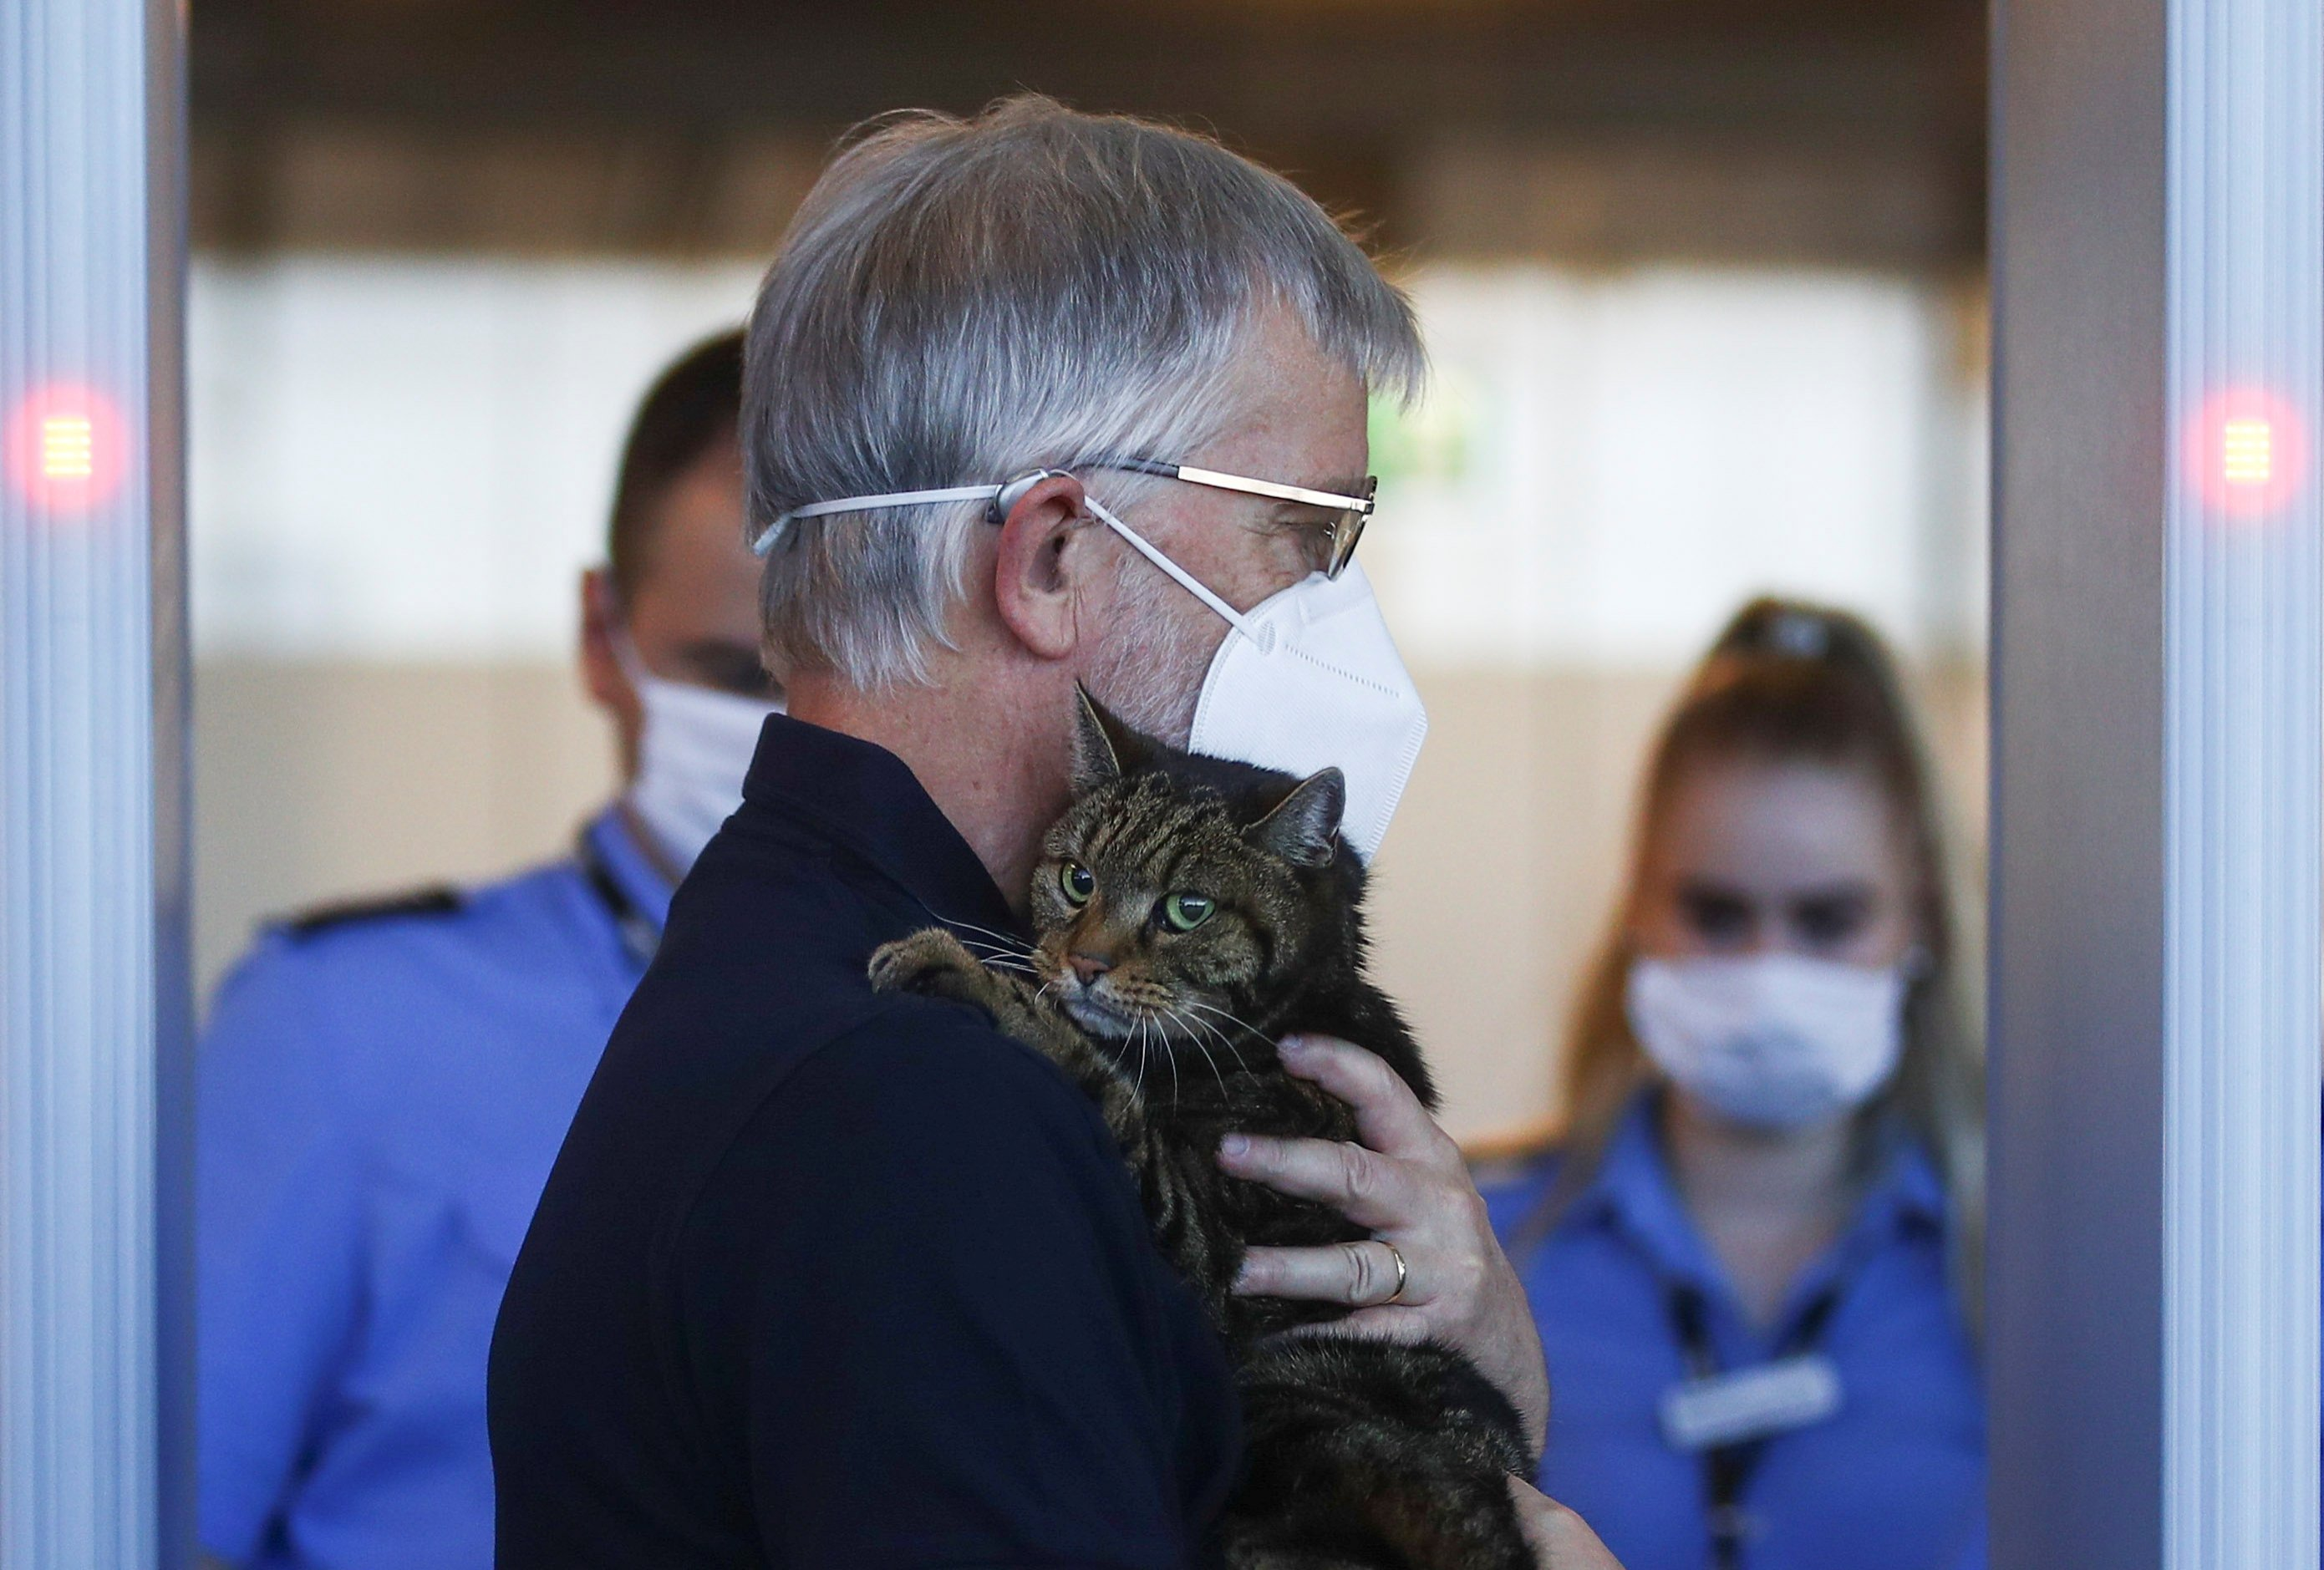 A man carrying a cat walks past security control at the Vienna International Airport in Schwechat, Austria, July 1, 2020. (Reuters Photo)